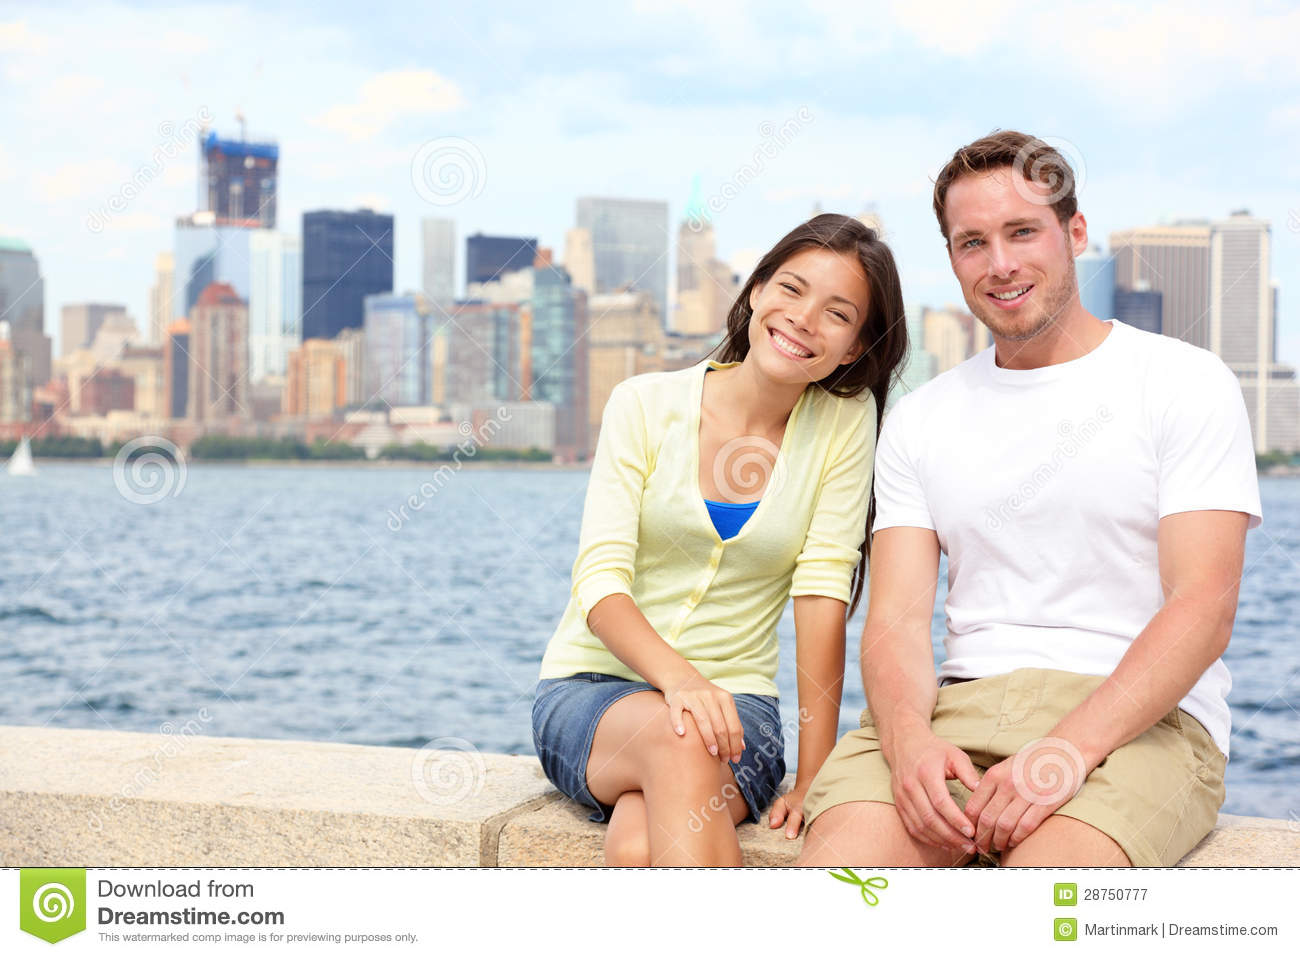 Online dating new york professionals